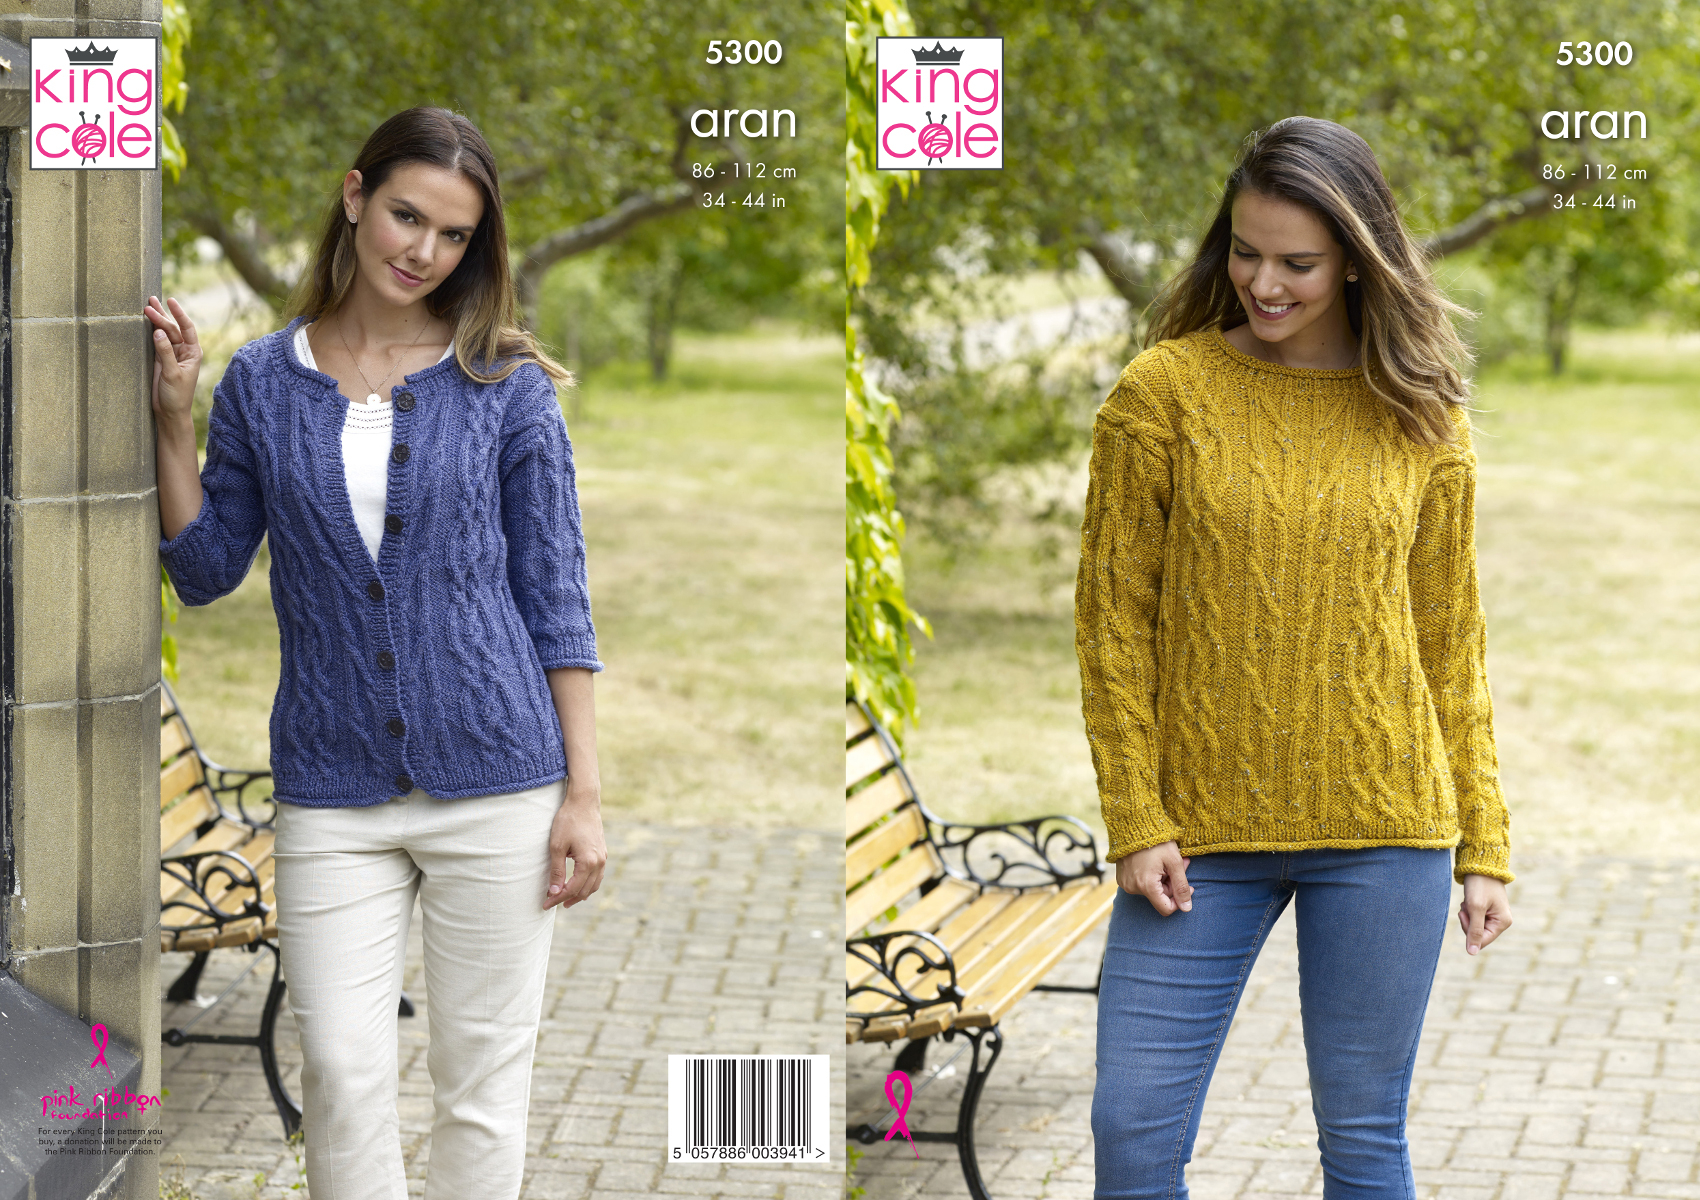 Aran Jumper Knitting Patterns Details About Womens Cable Knit Jumper Cardigan Knitting Pattern King Cole Ladies Aran 5300